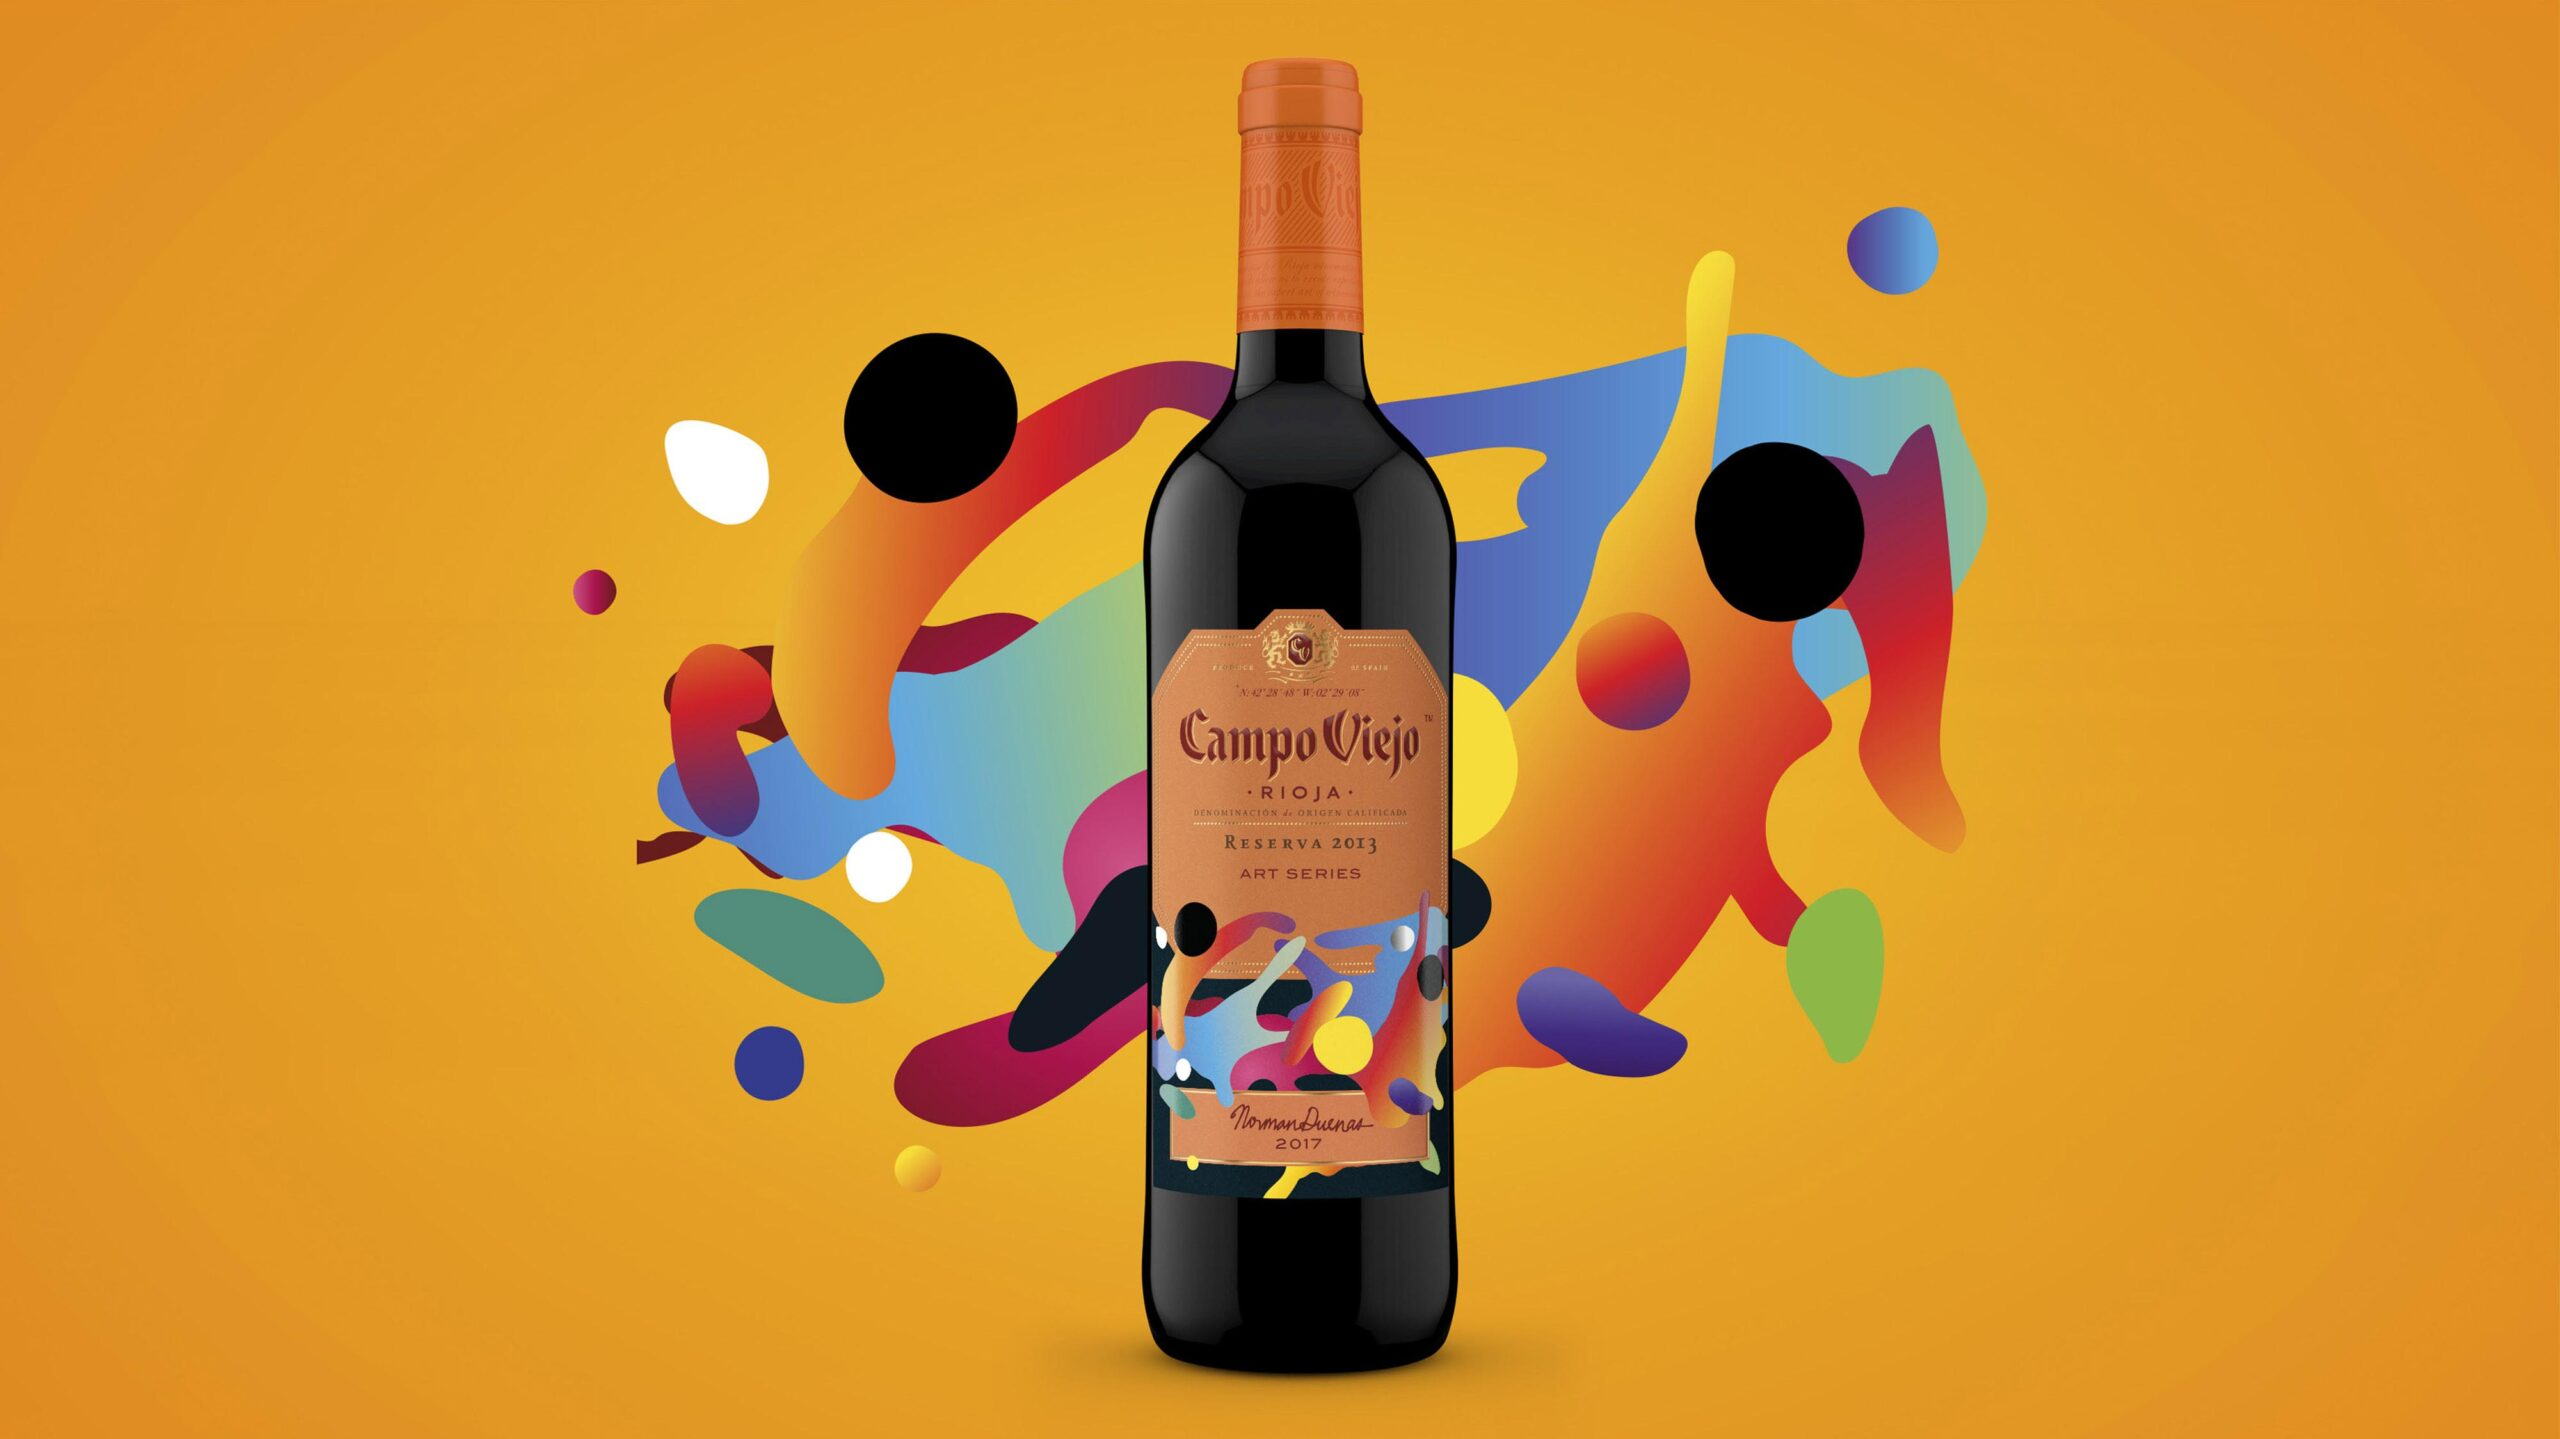 Campo Viejo: unlocking a global proposition